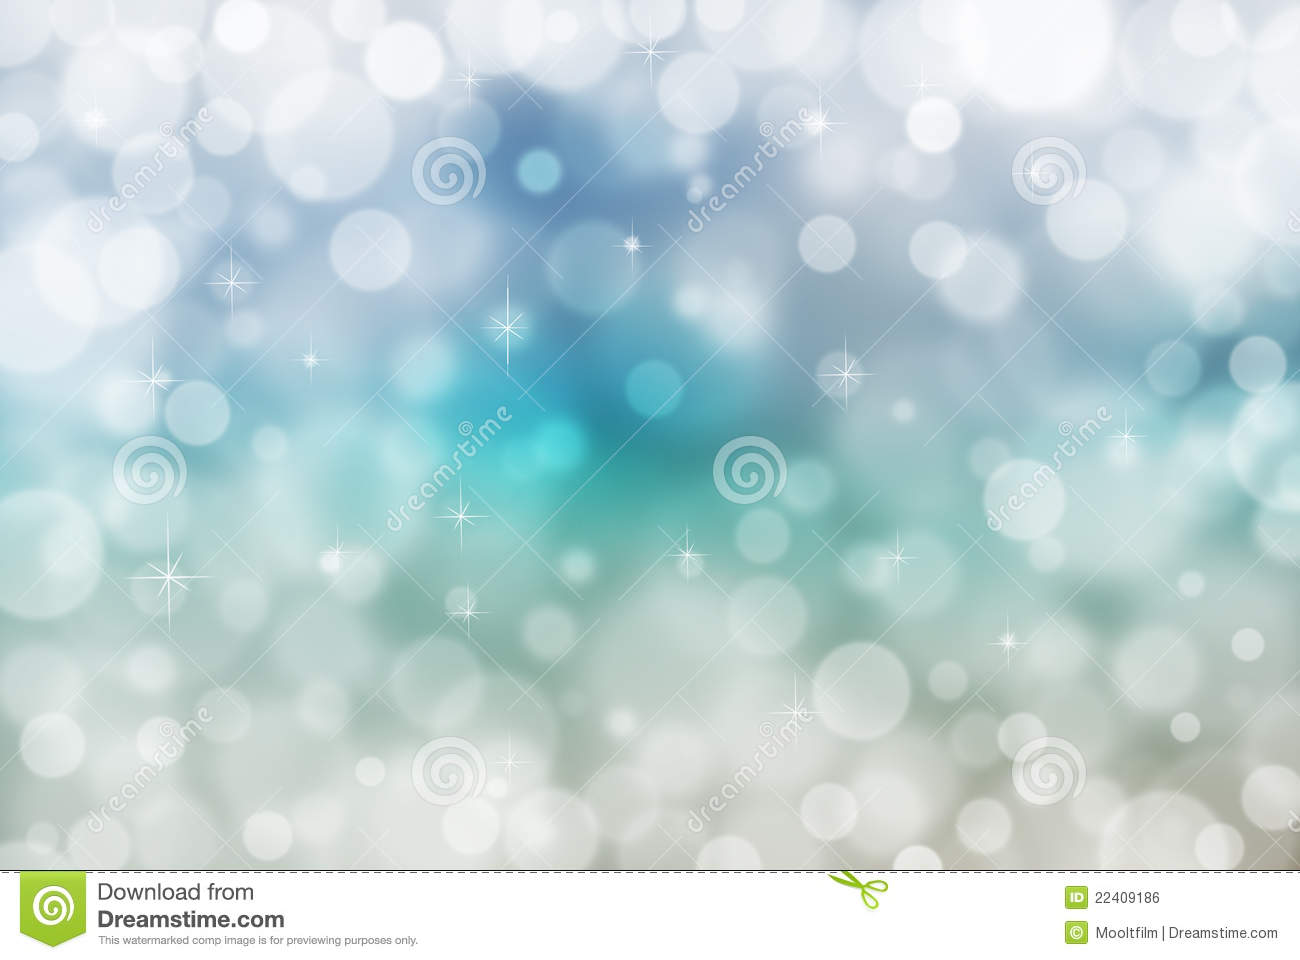 abstract winter background free - photo #7